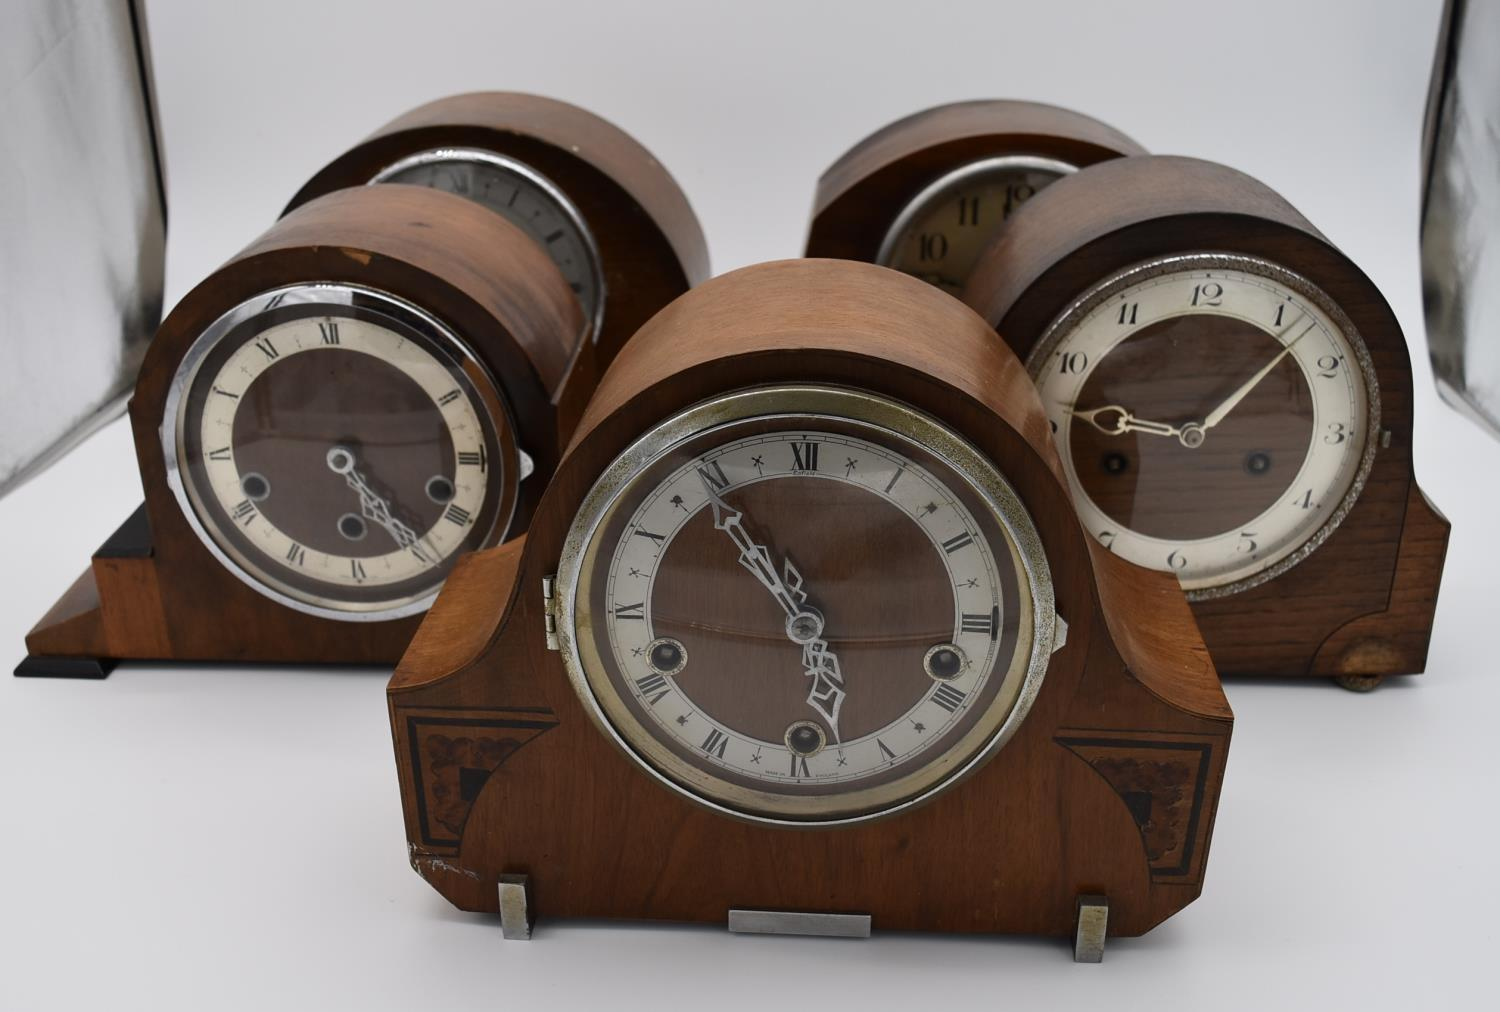 A collection of five mid 20th century mantel clocks with English brass movements. Some have roman